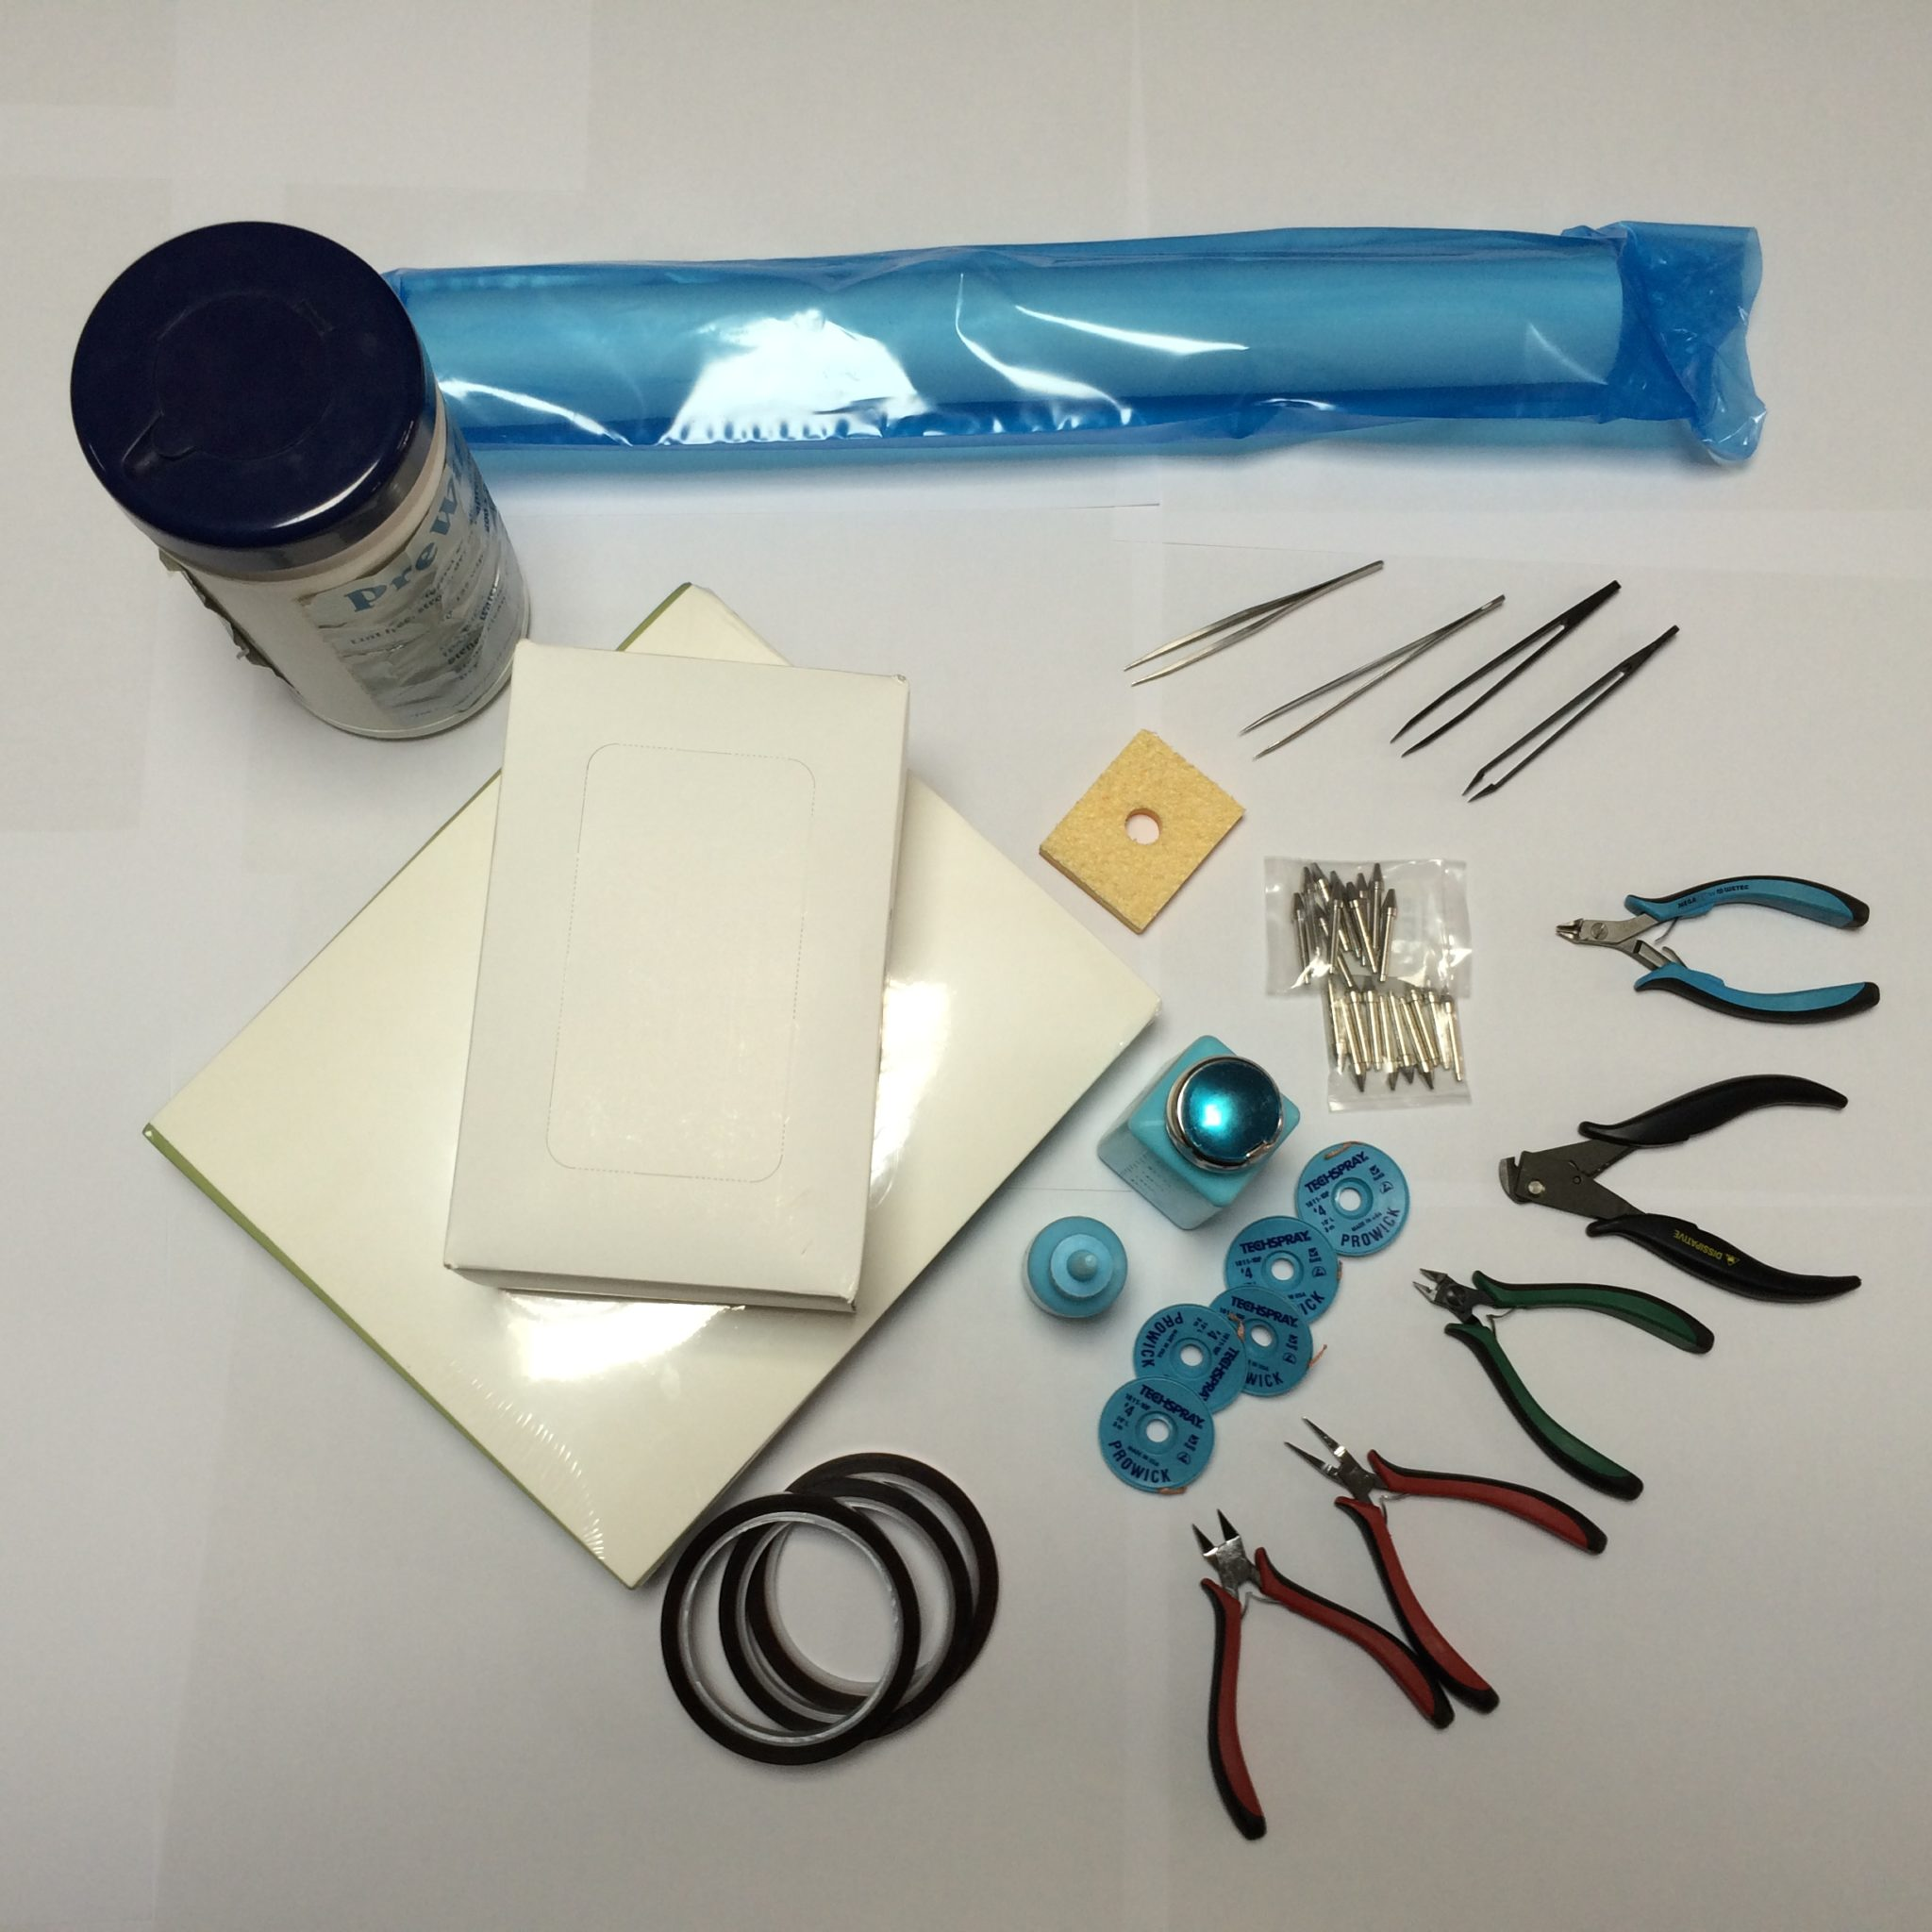 Other soldering materials